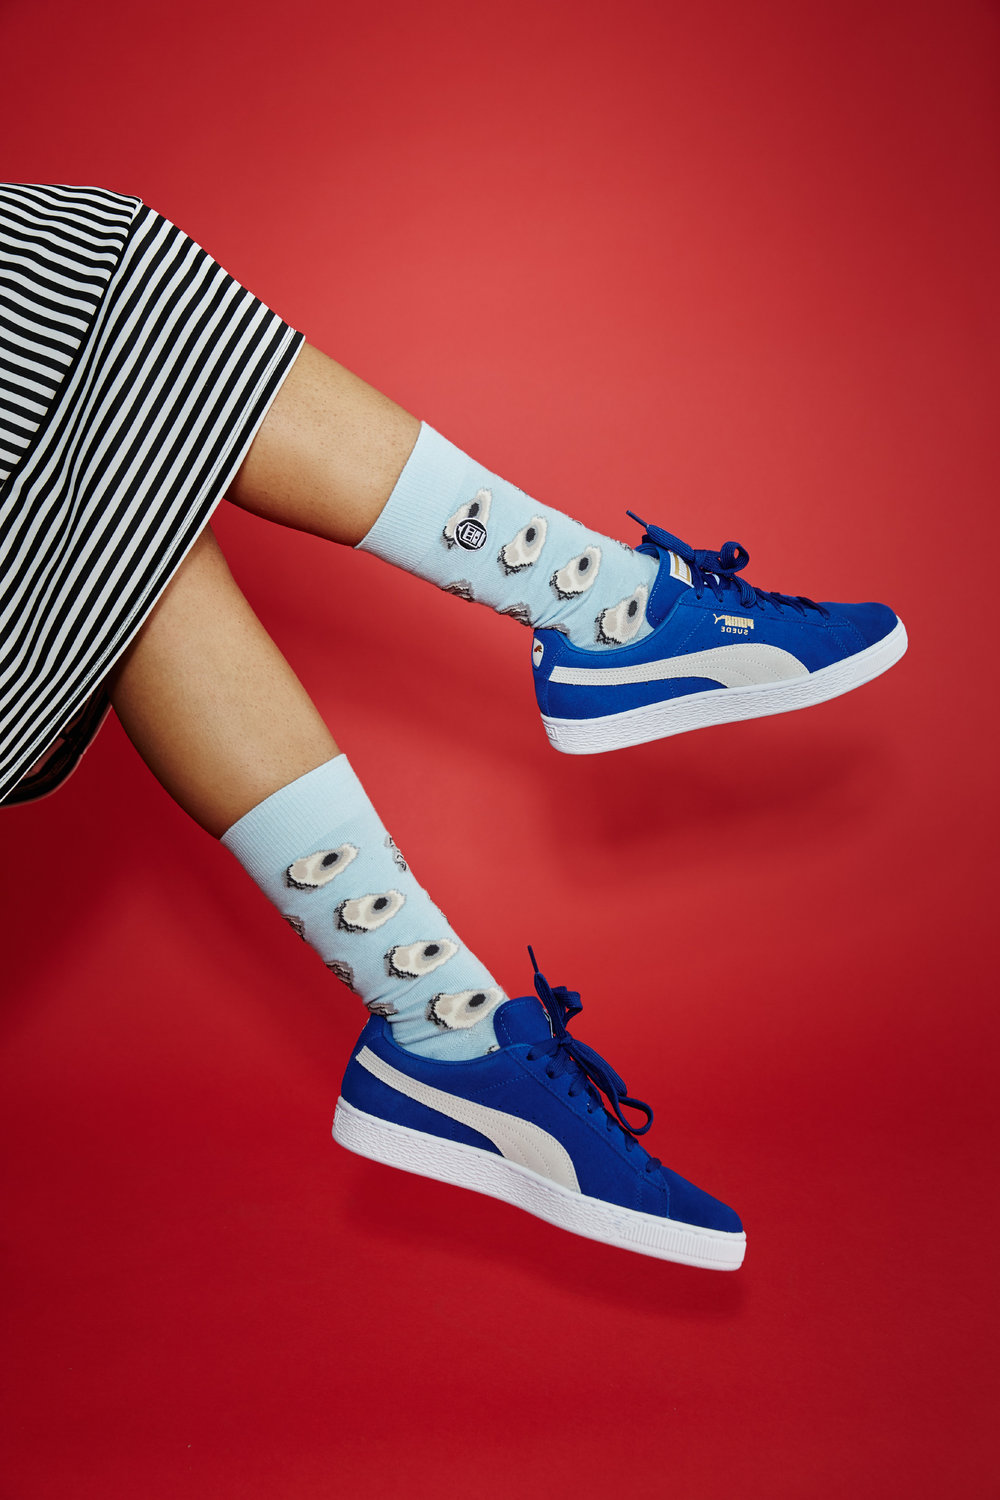 Blue Shoes on Red 2 Web.jpg